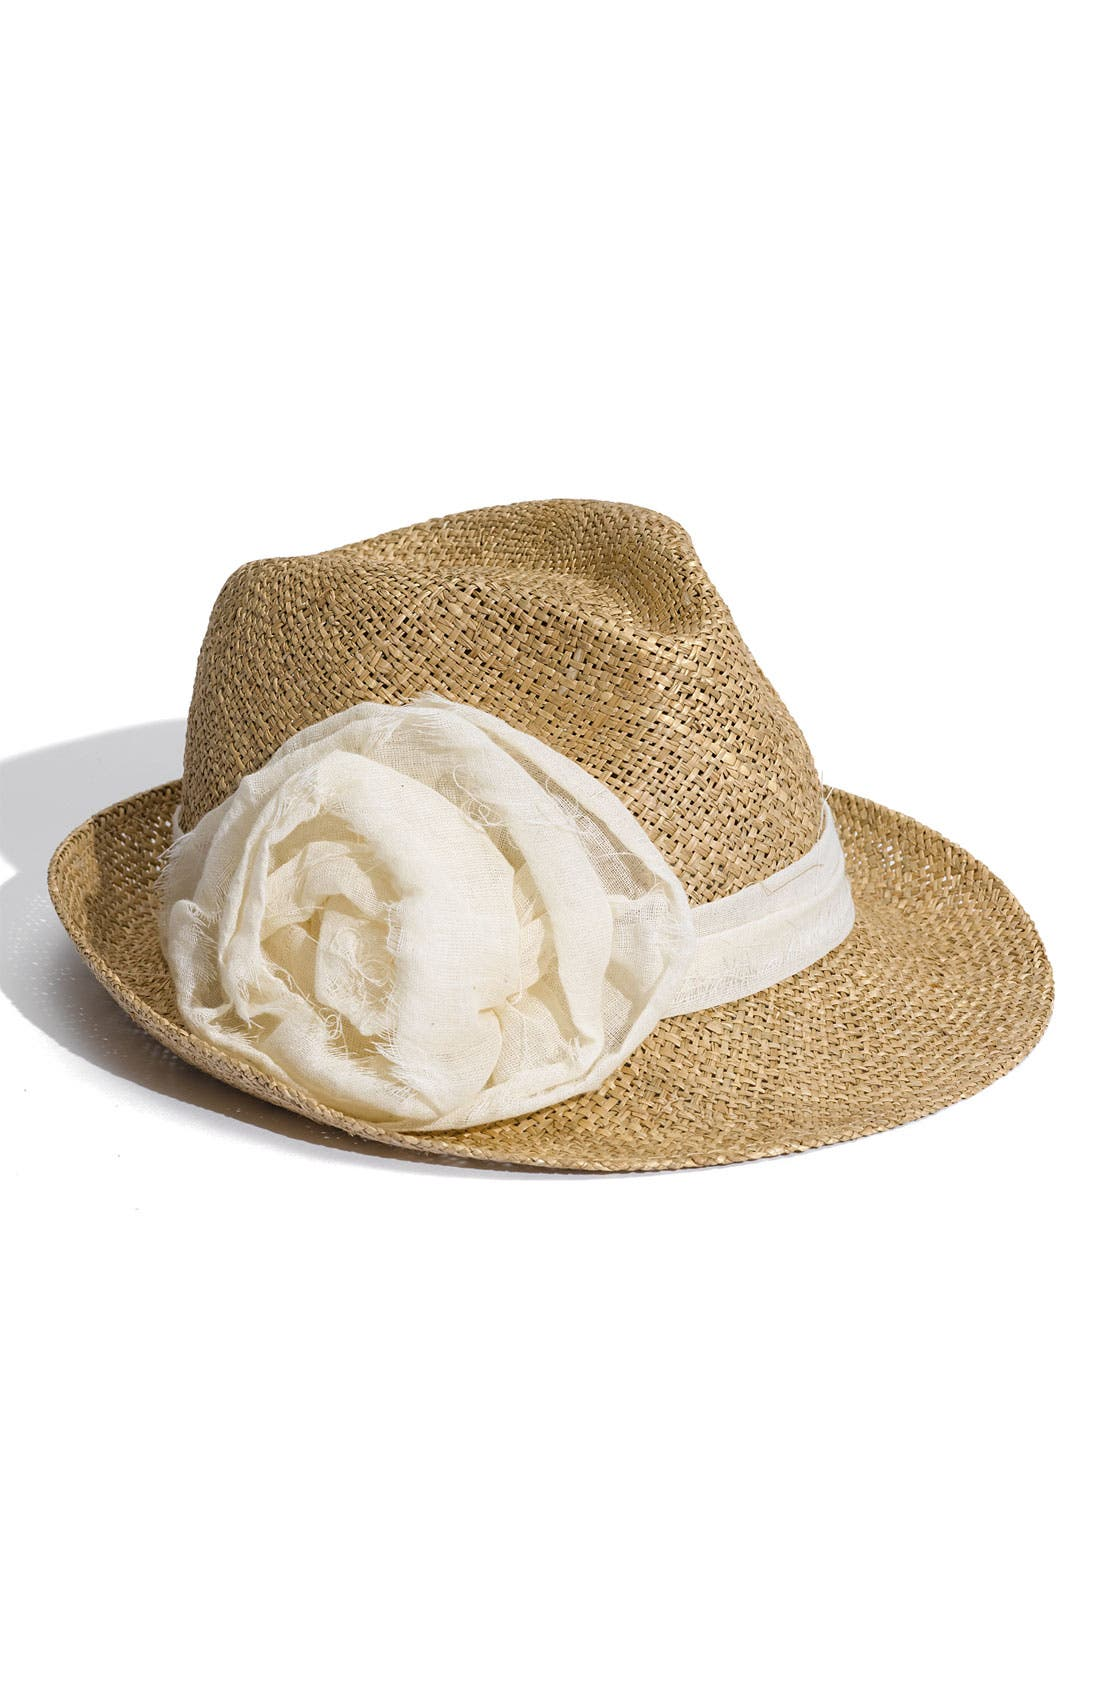 Alternate Image 1 Selected - Tarnish Straw Fedora